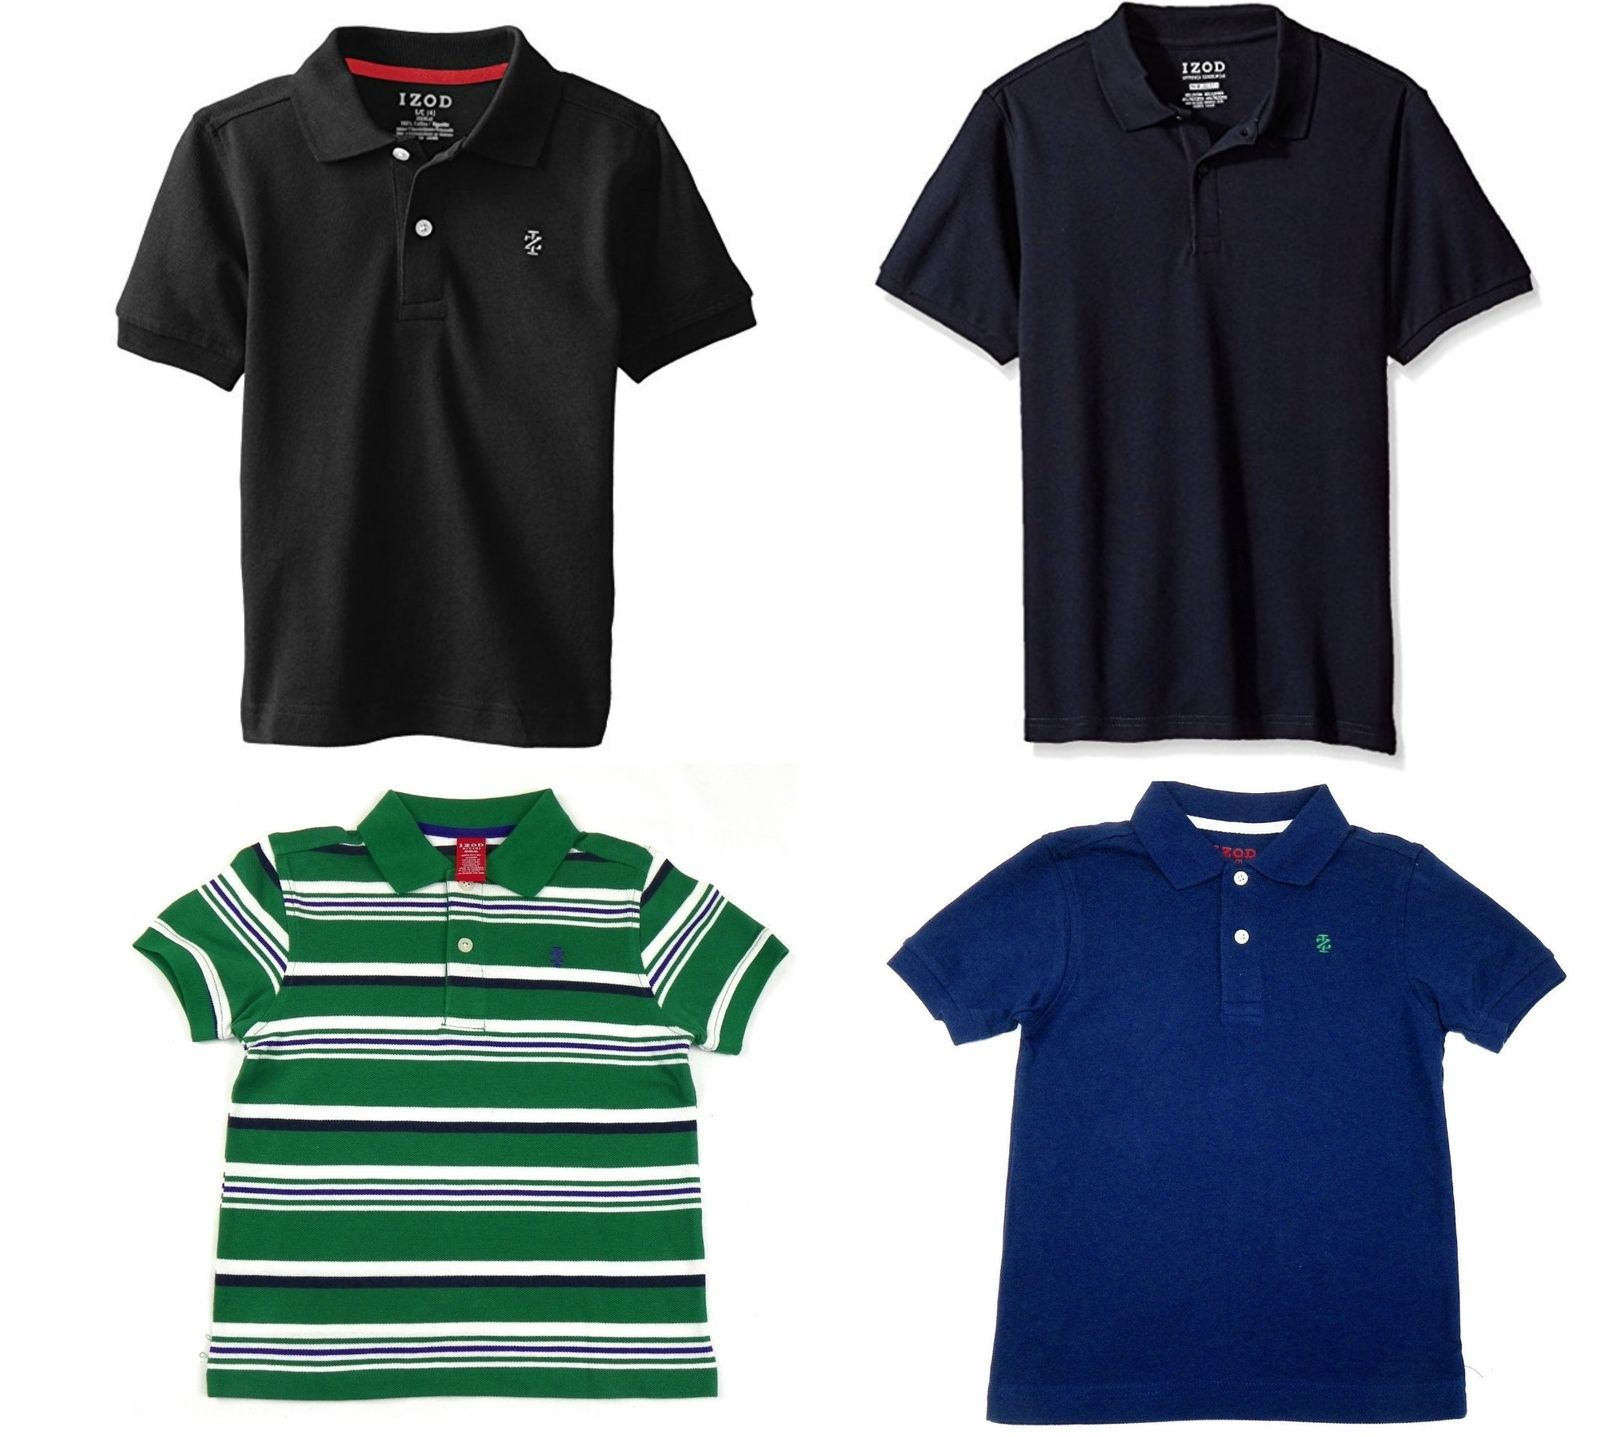 Boy's 4-7x Polo IZOD Cotton Pique Short Sleeve Pullover Shirt NEW